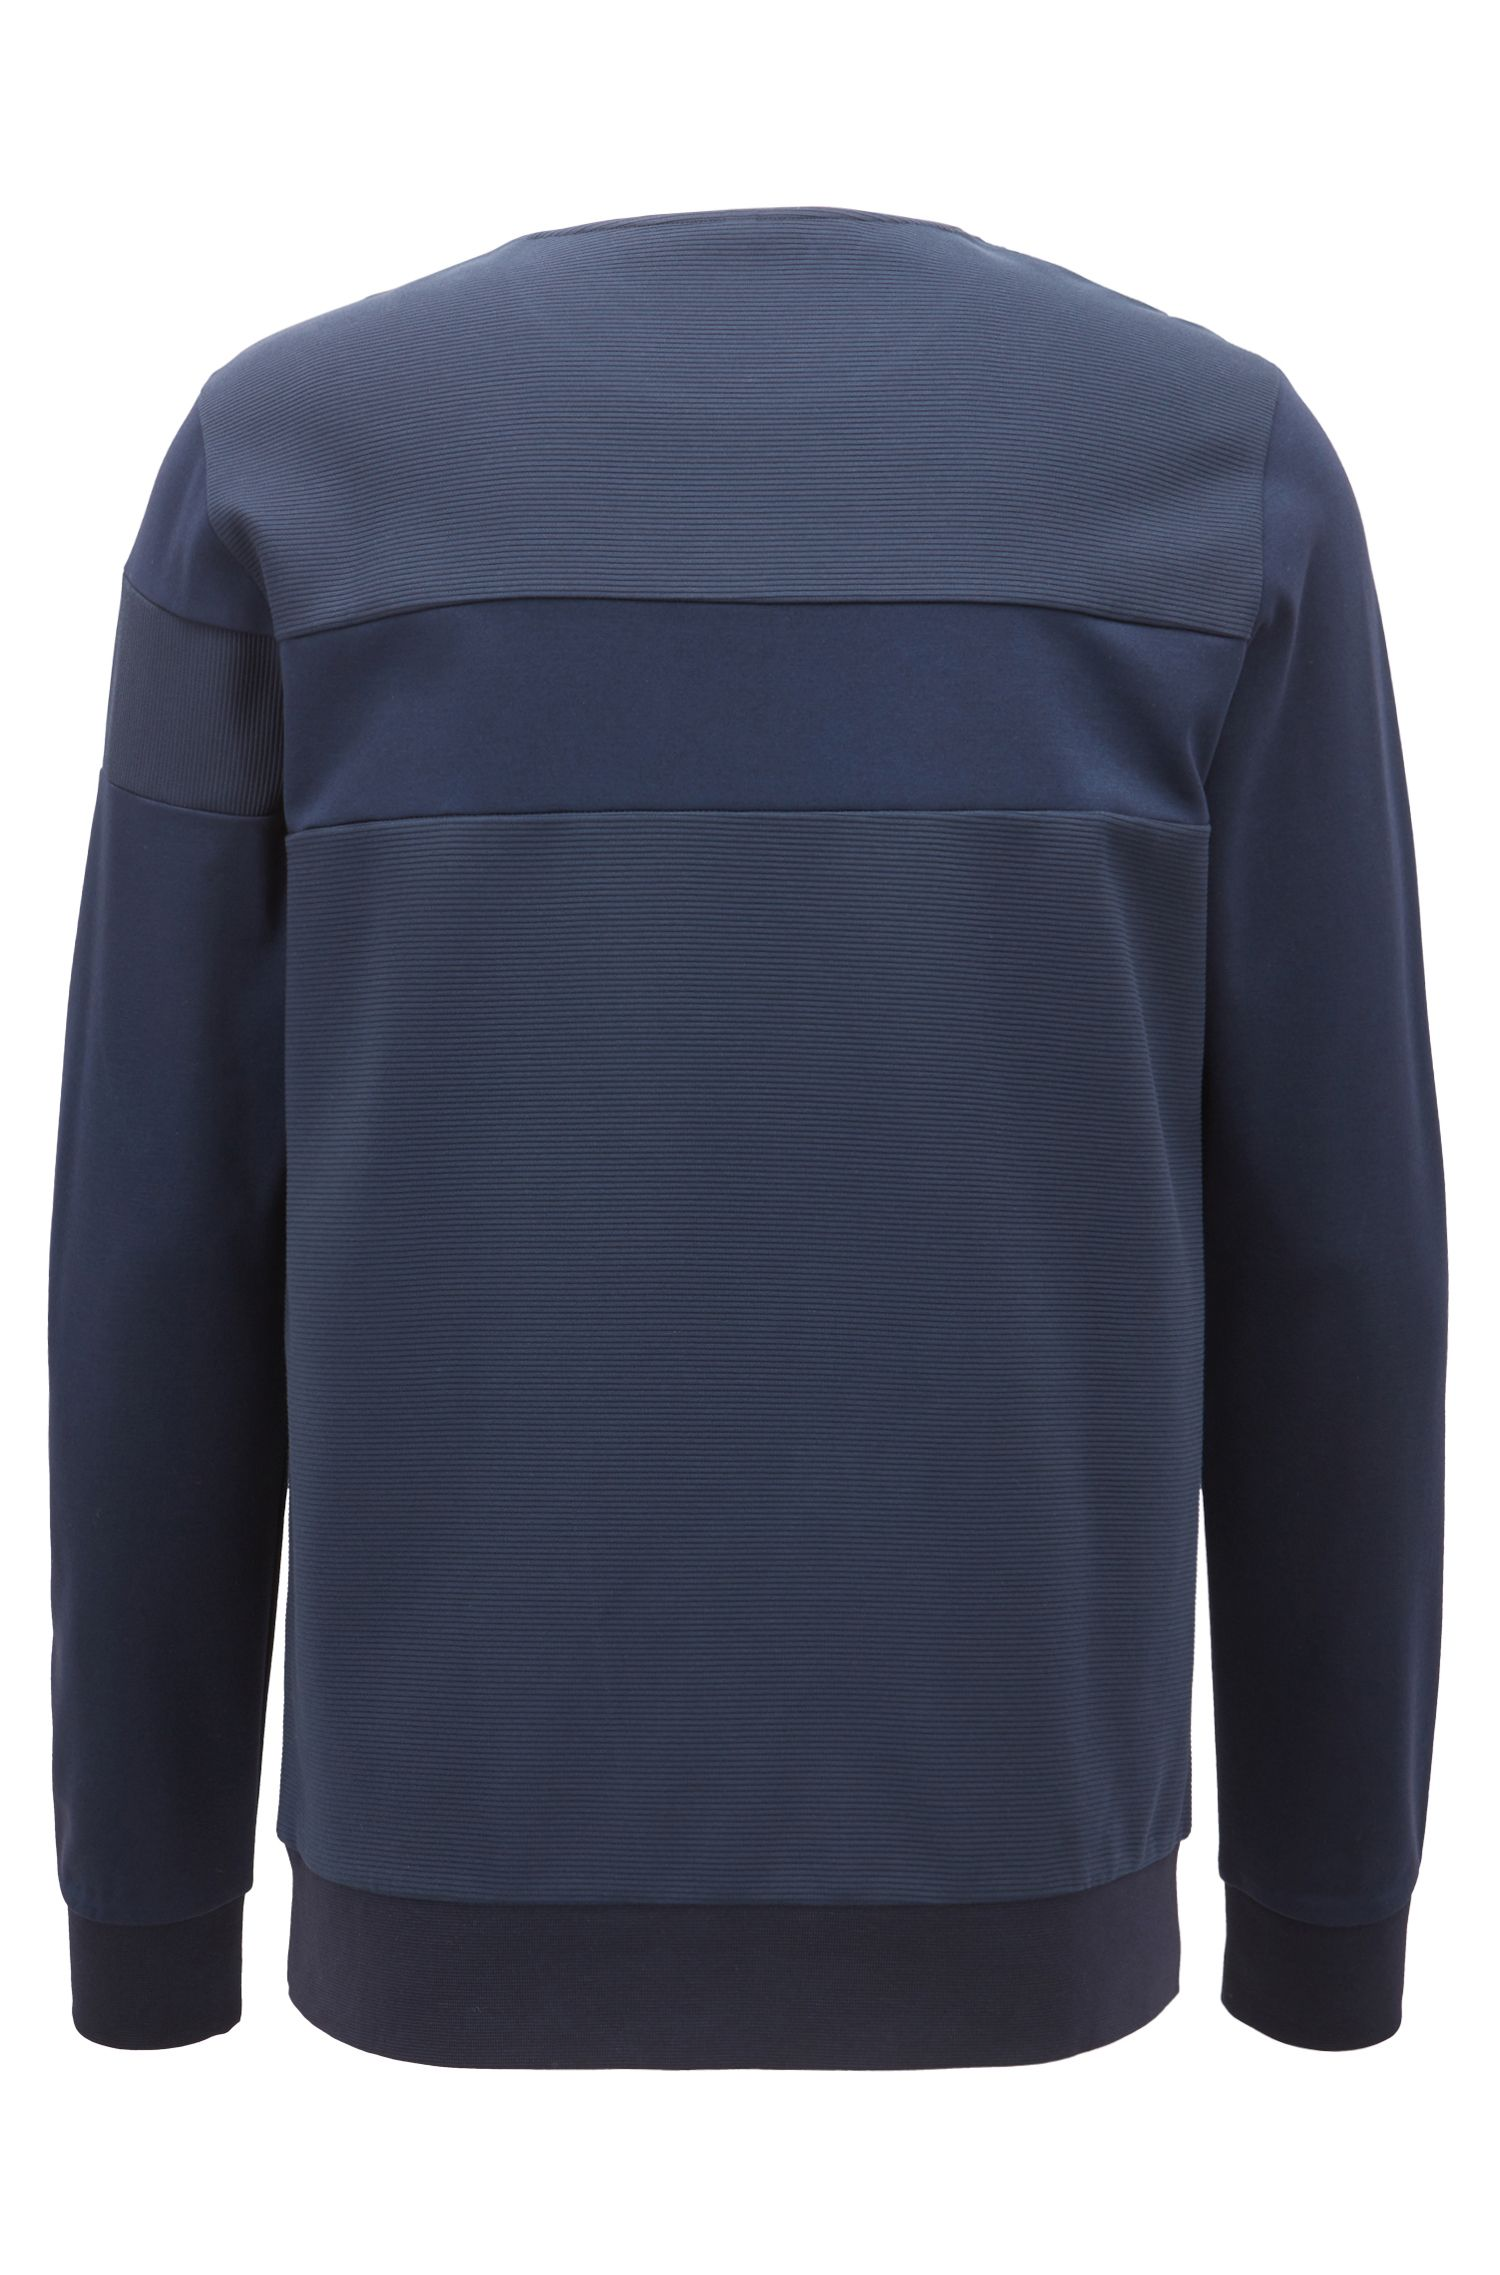 Water-repellent sweatshirt with moisture management and reflective details